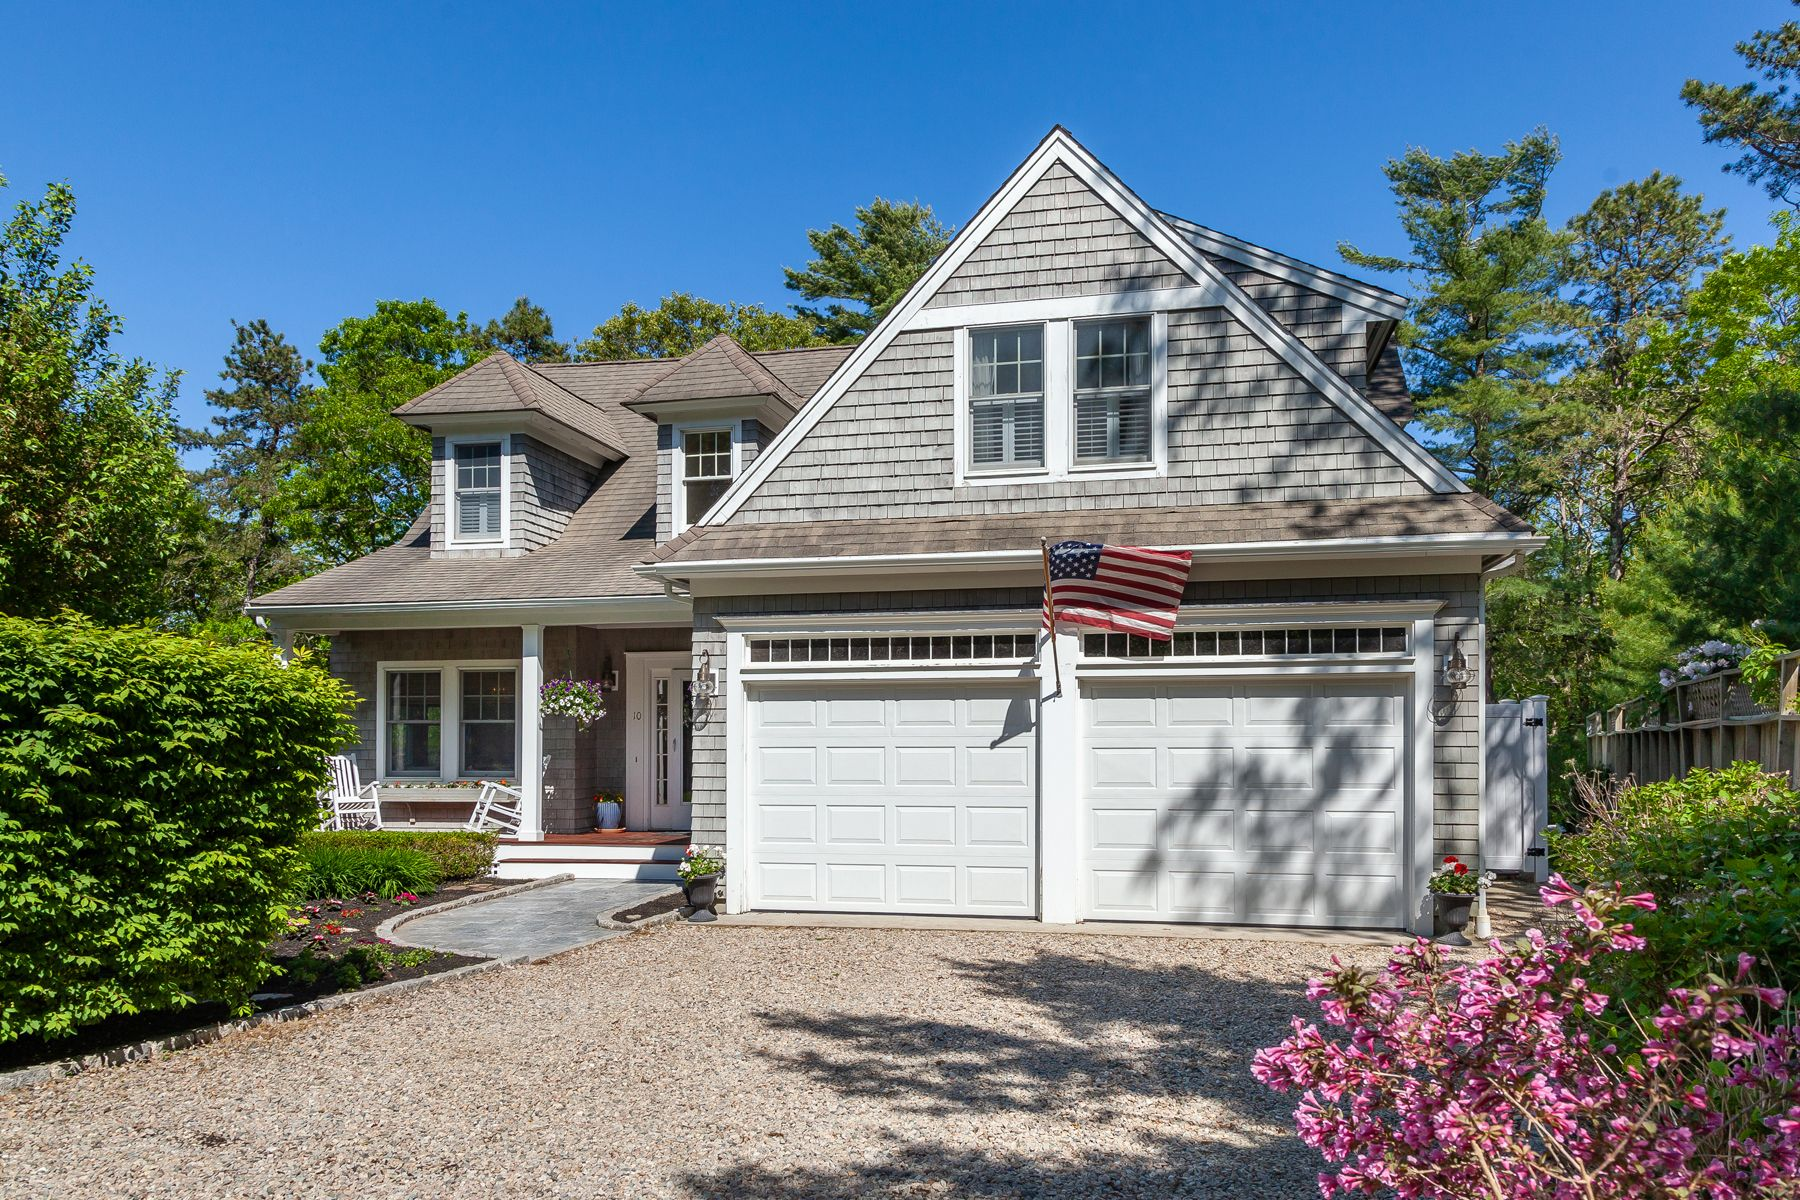 Single Family Homes for Sale at 10 Wading Place Road Mashpee, Massachusetts 02649 United States